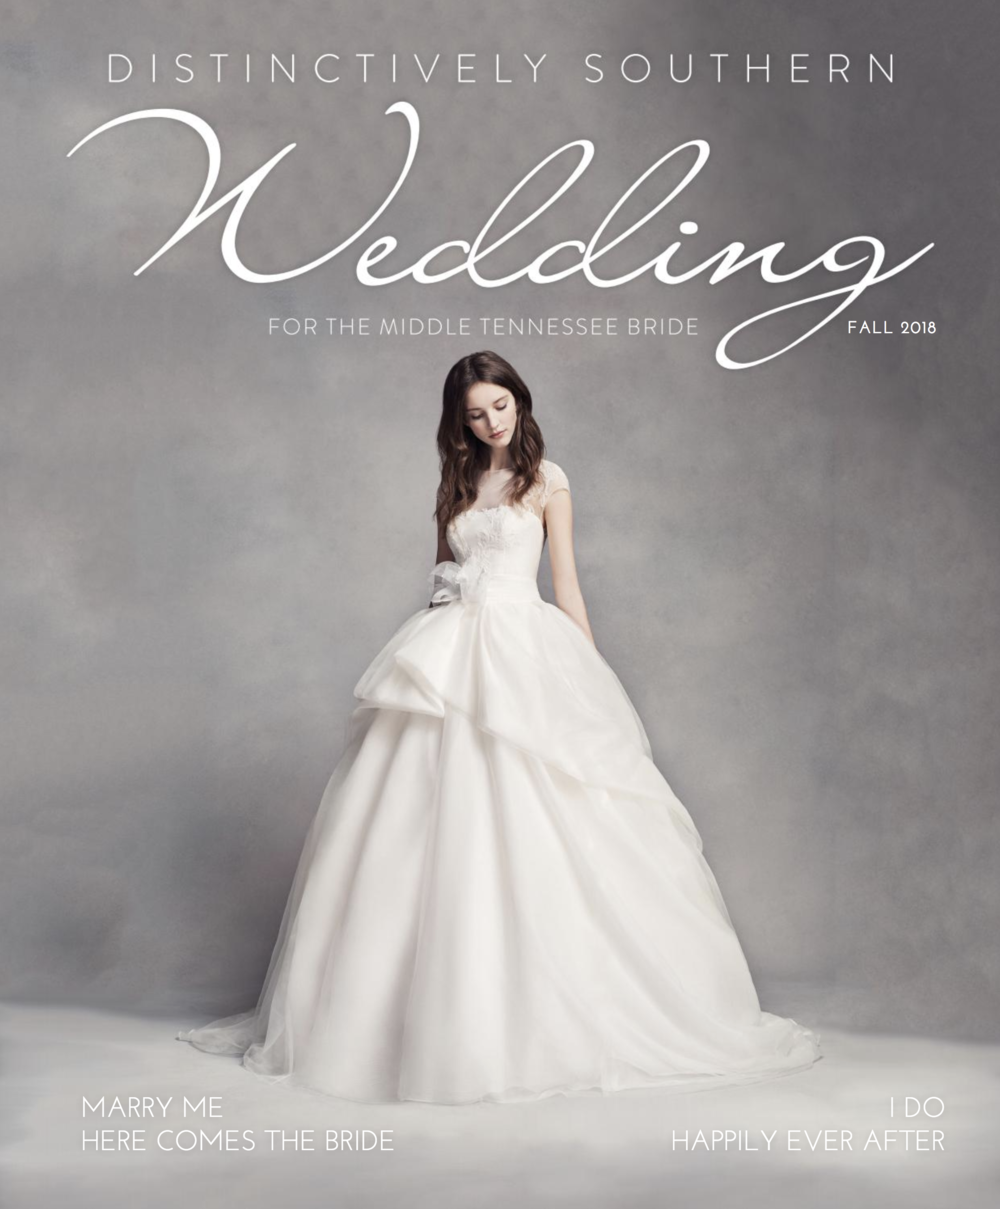 Feature in Distinctively Southern Wedding Magazine Fall 2018 - EBJ & Company.png